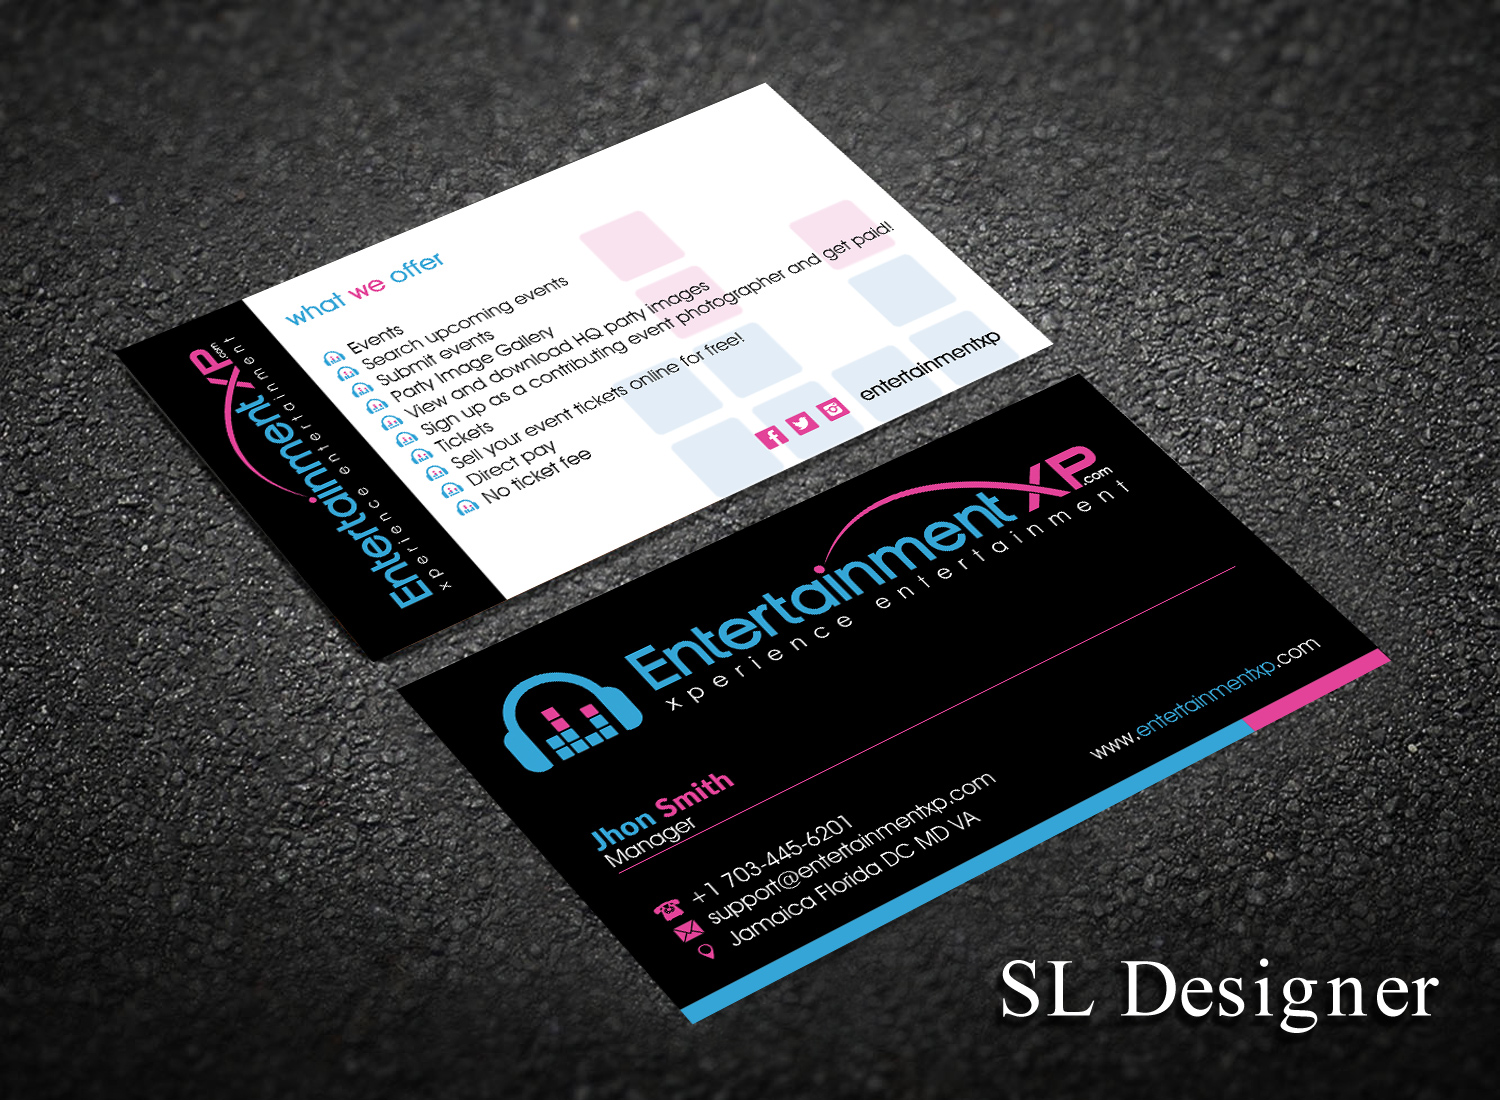 Masculine serious business business card design for business card design by sl designer for entertainmentxp design 13152922 reheart Images